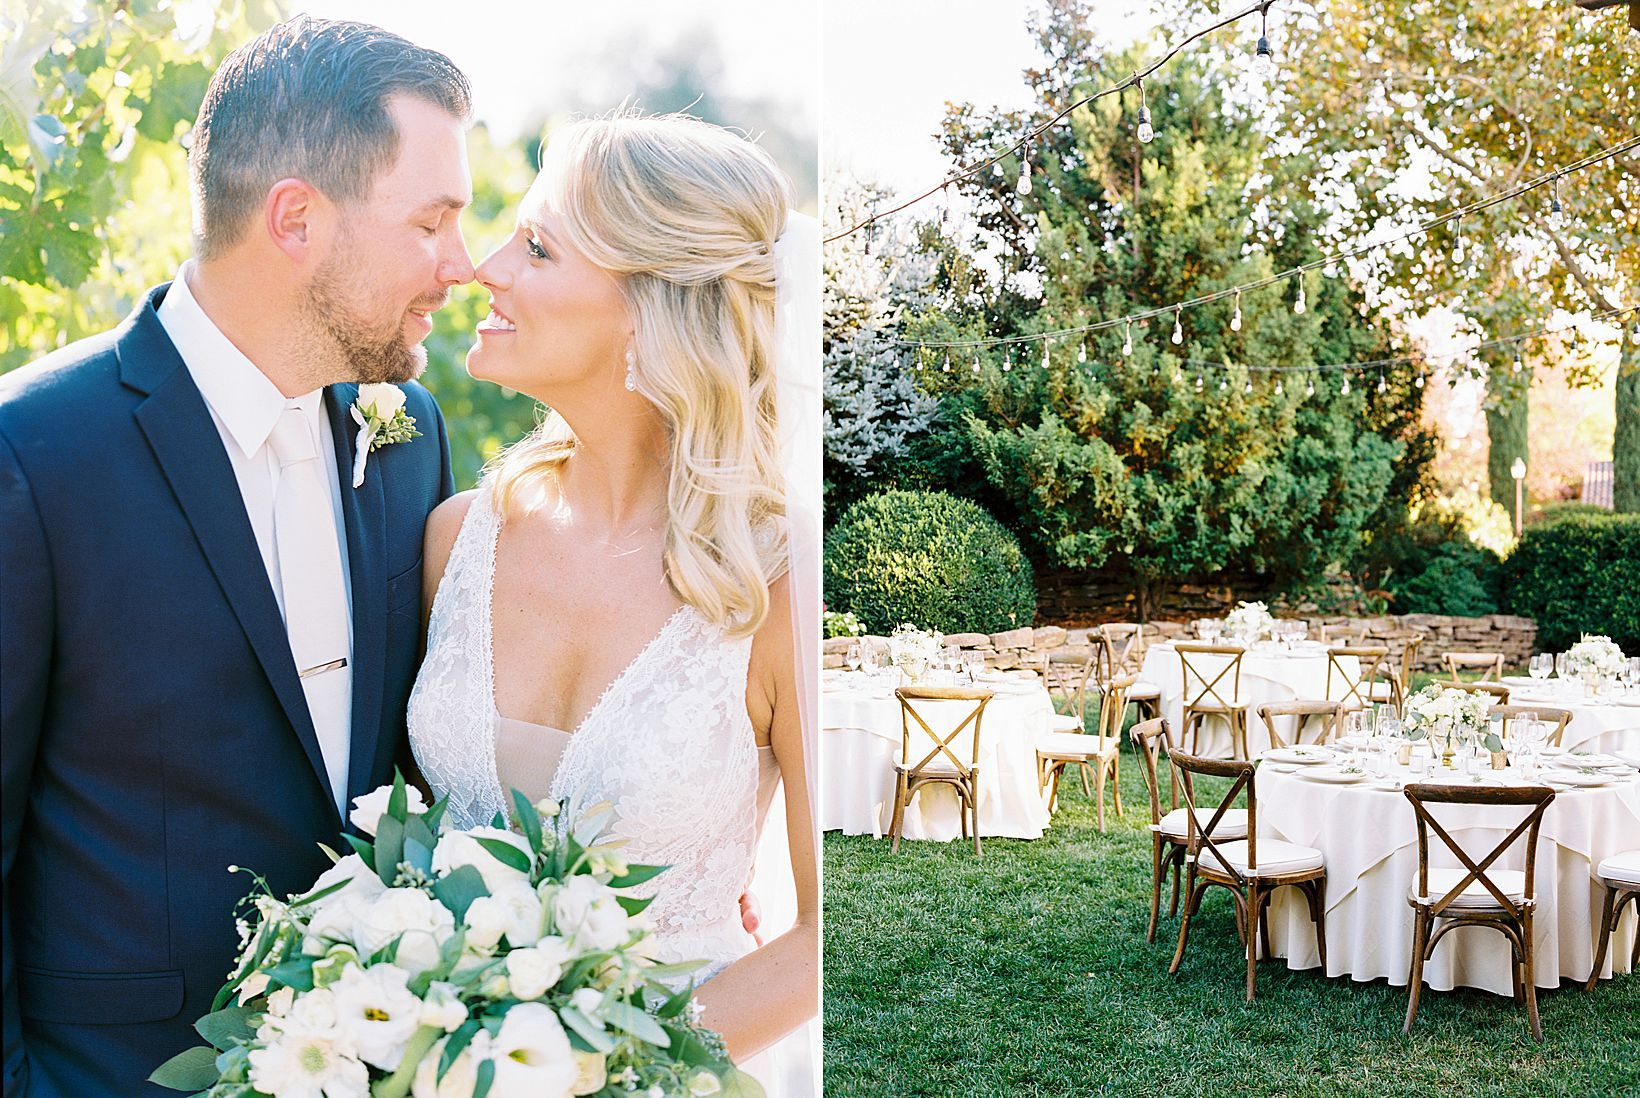 Vintners Inn Wedding With Cambria Events Featured On Style Me Pretty In 2020 Film Wedding Photography Sonoma Wedding Napa Wedding